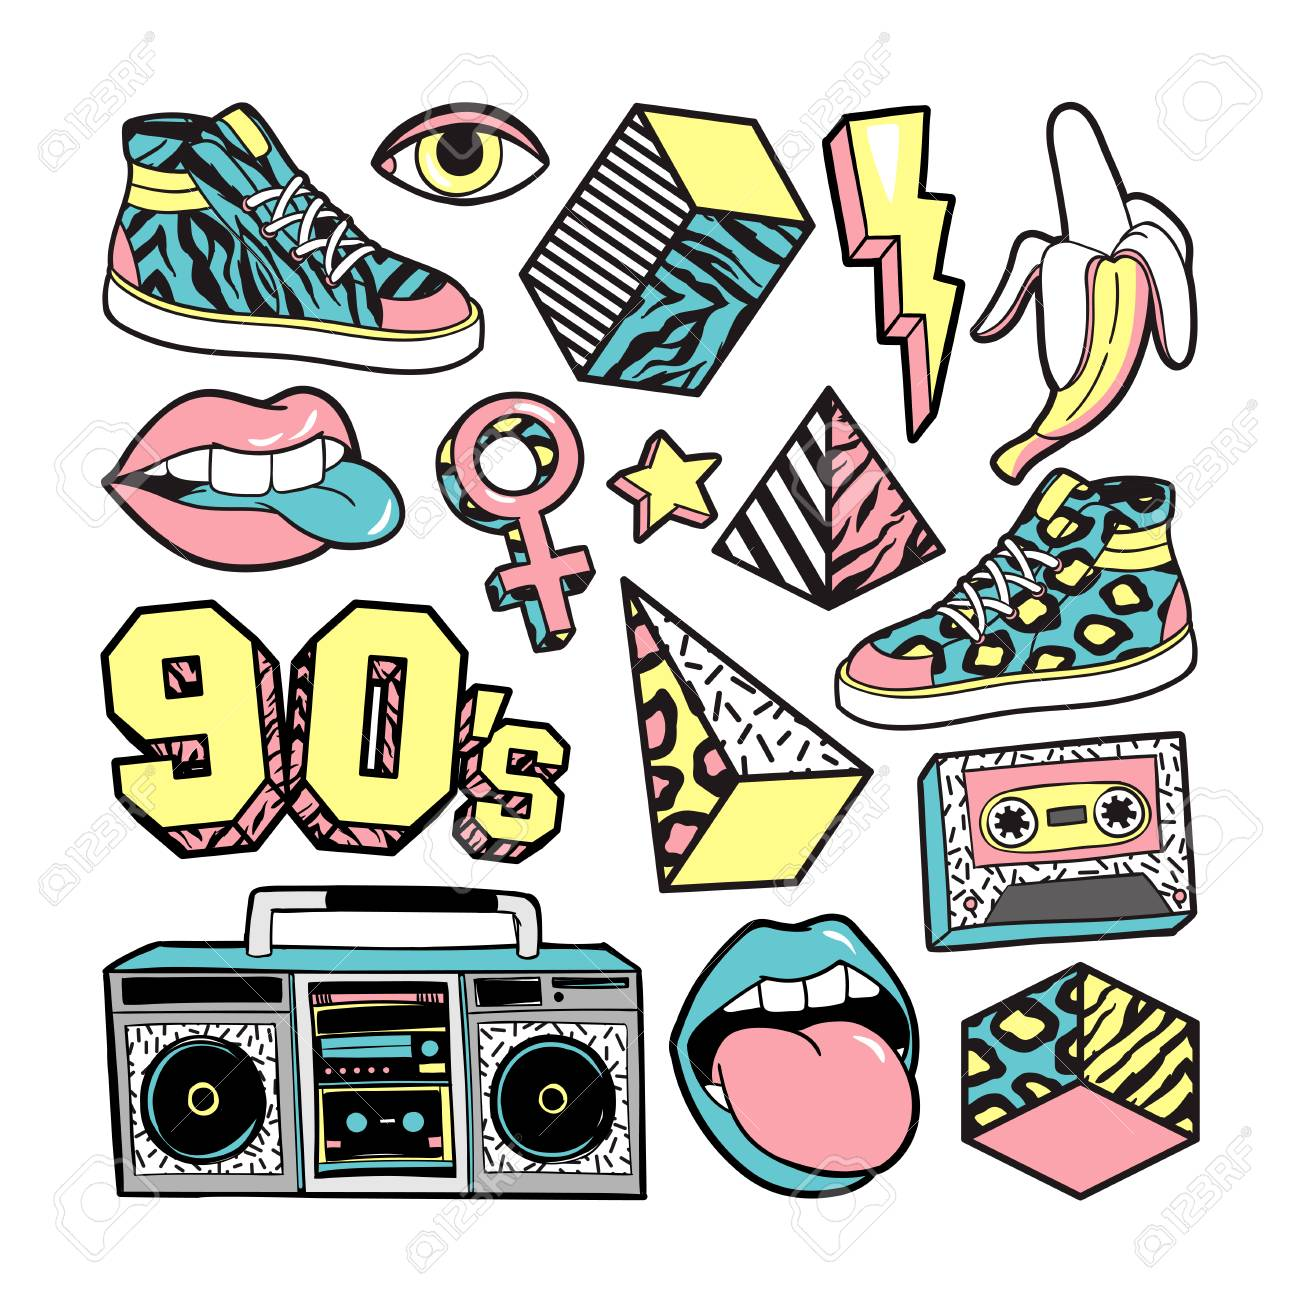 Fashion patches in in 80s-90s memphis style. - 81068650